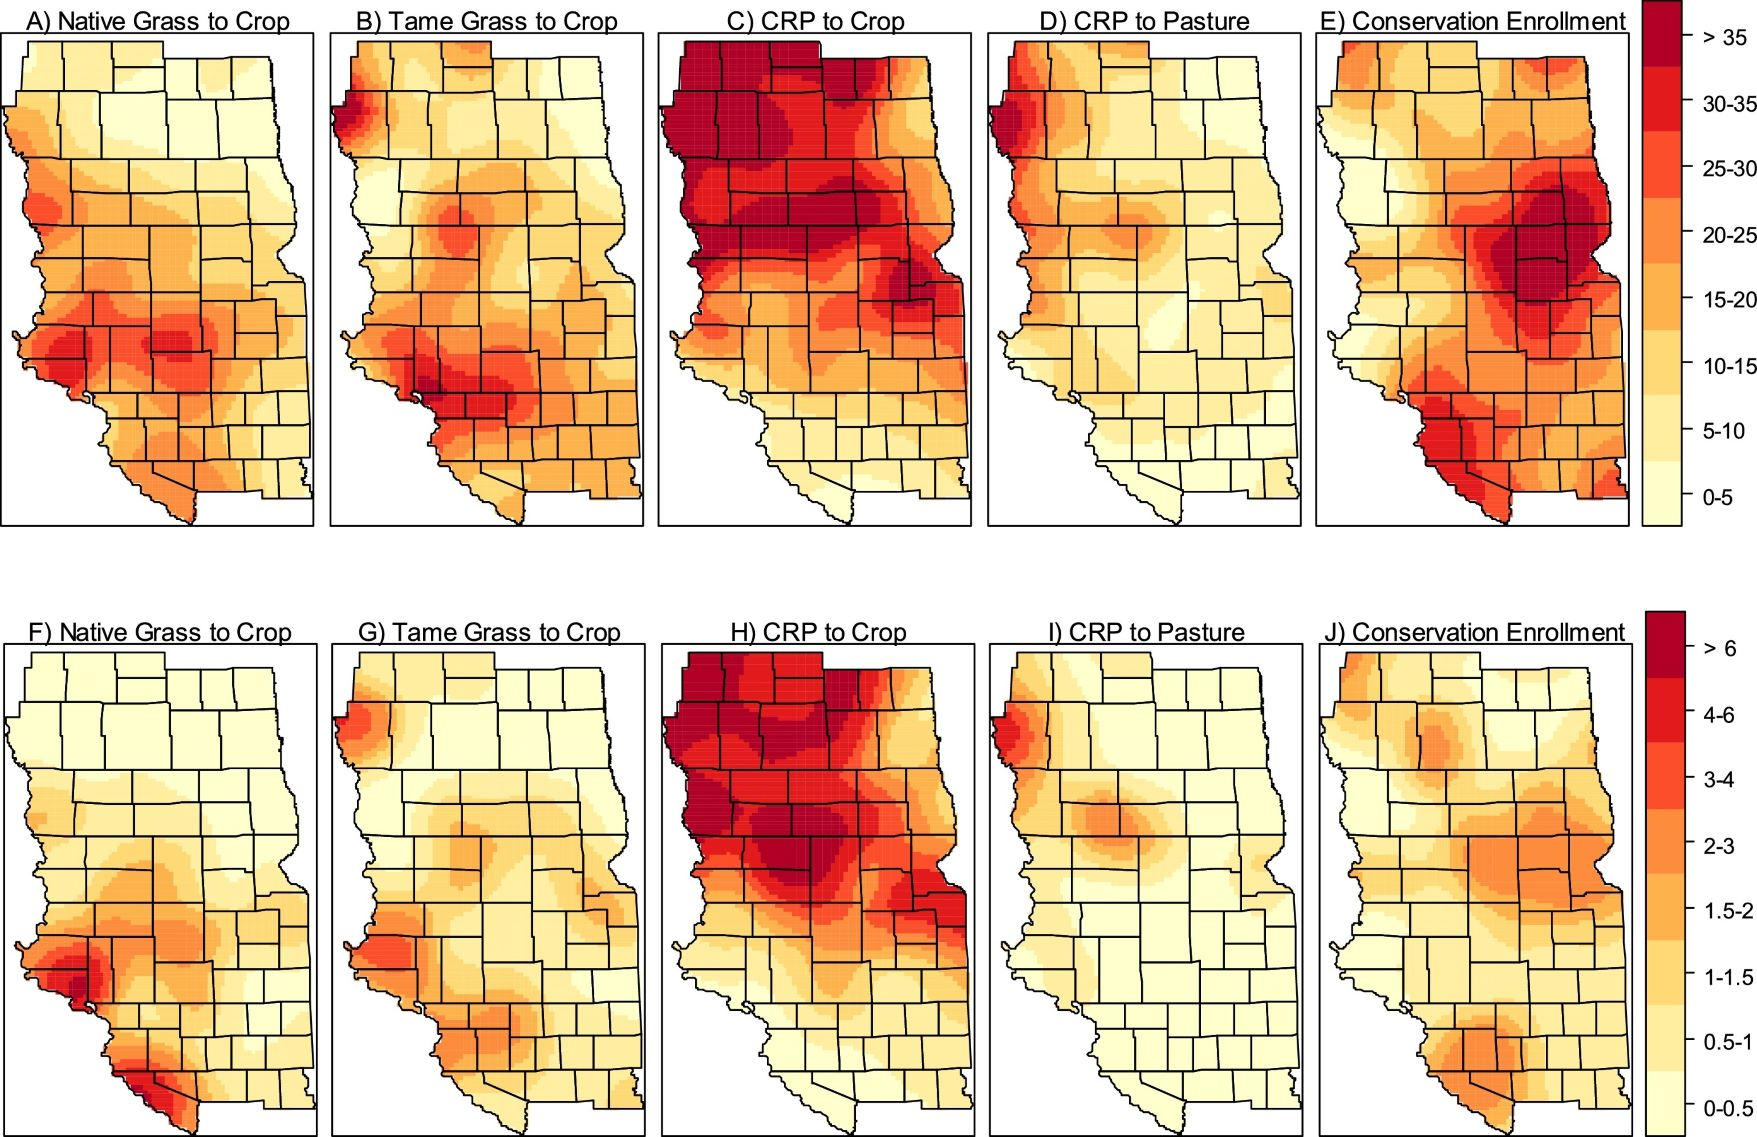 Land Use Change Maps